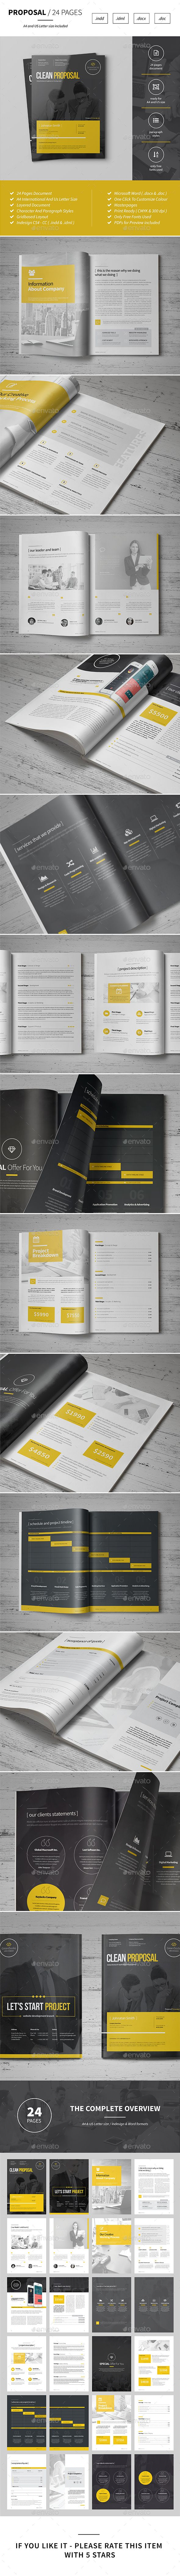 Proposal | Proposals, Proposal templates and Template